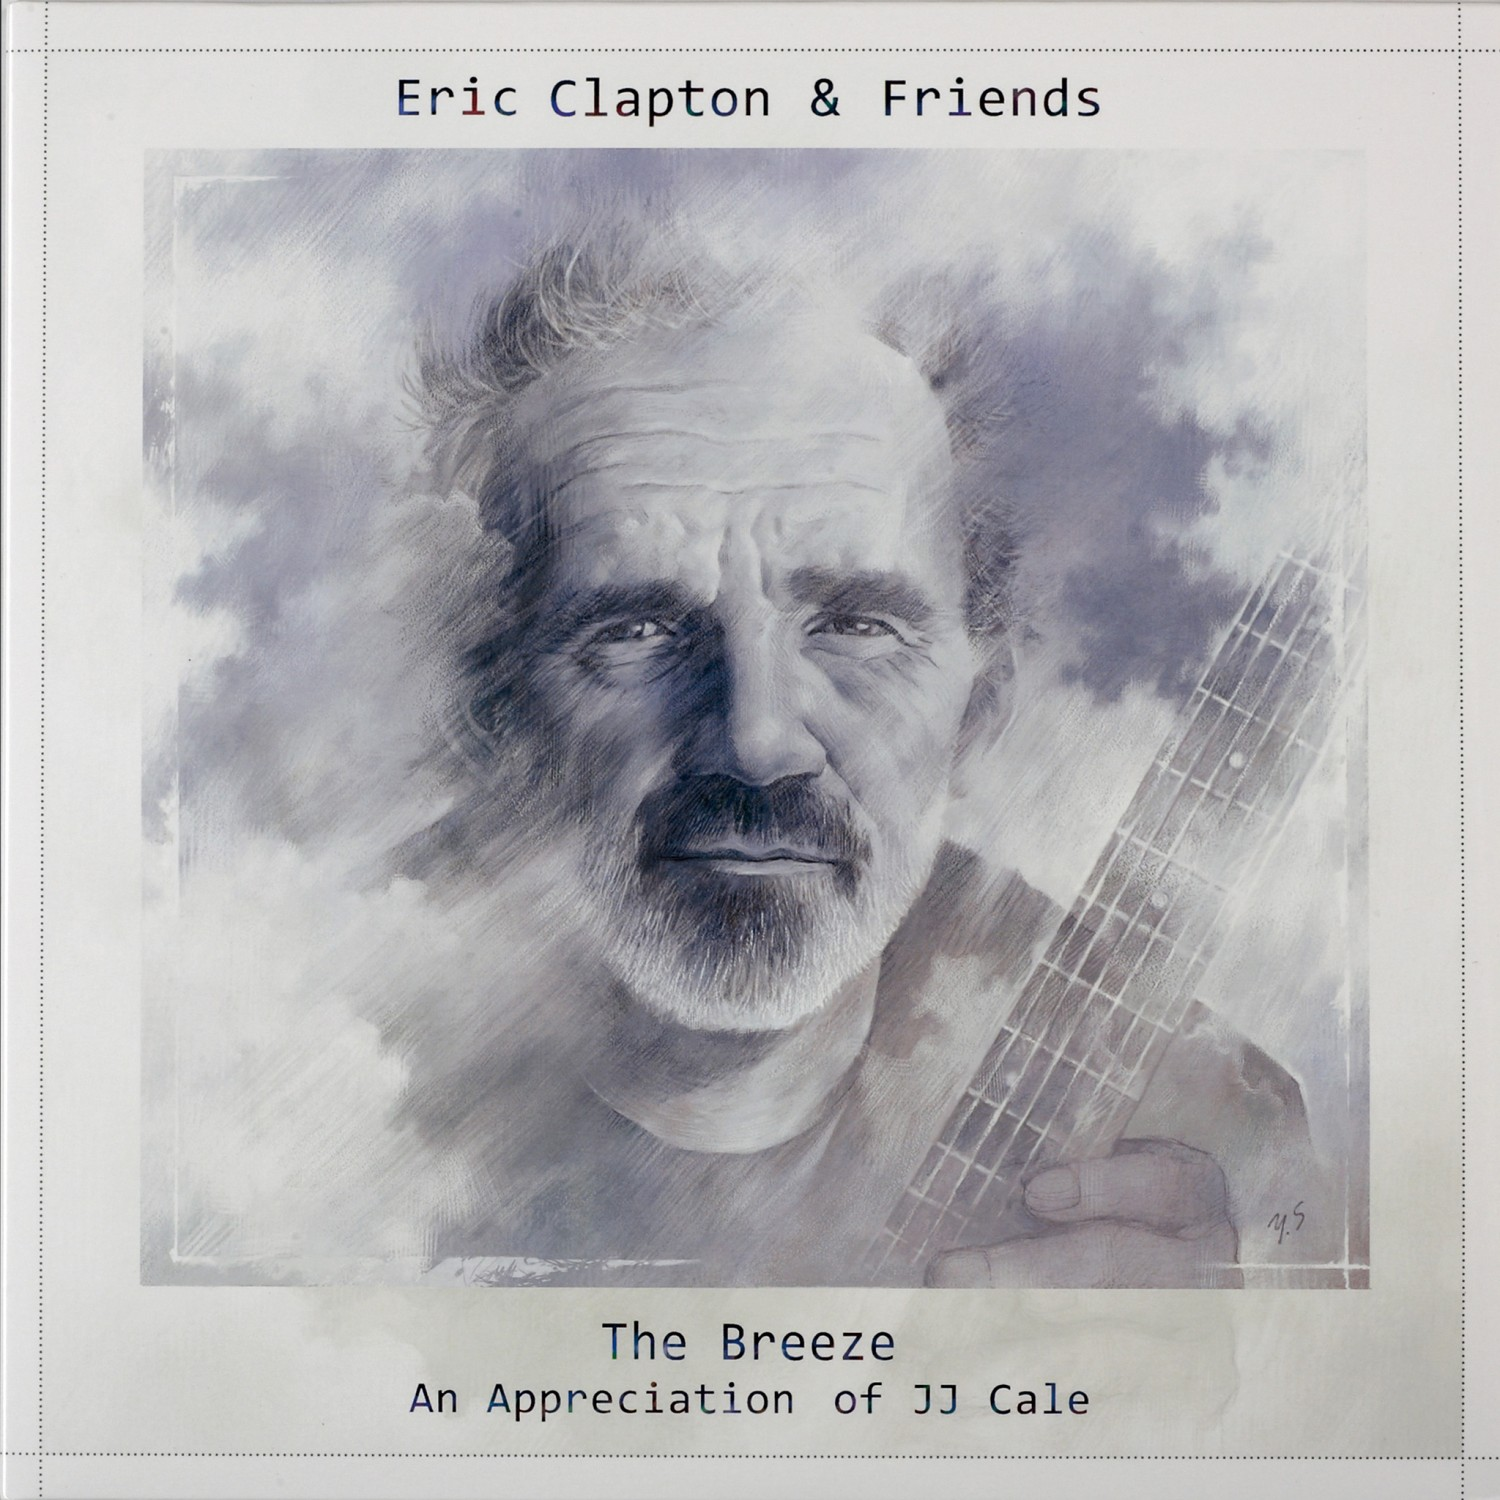 Schallplatte Eric Clapton & Friends - The Breeze – An Appreciation of JJ Cale (Bushbranch/Surfdog) im Test, Bild 1